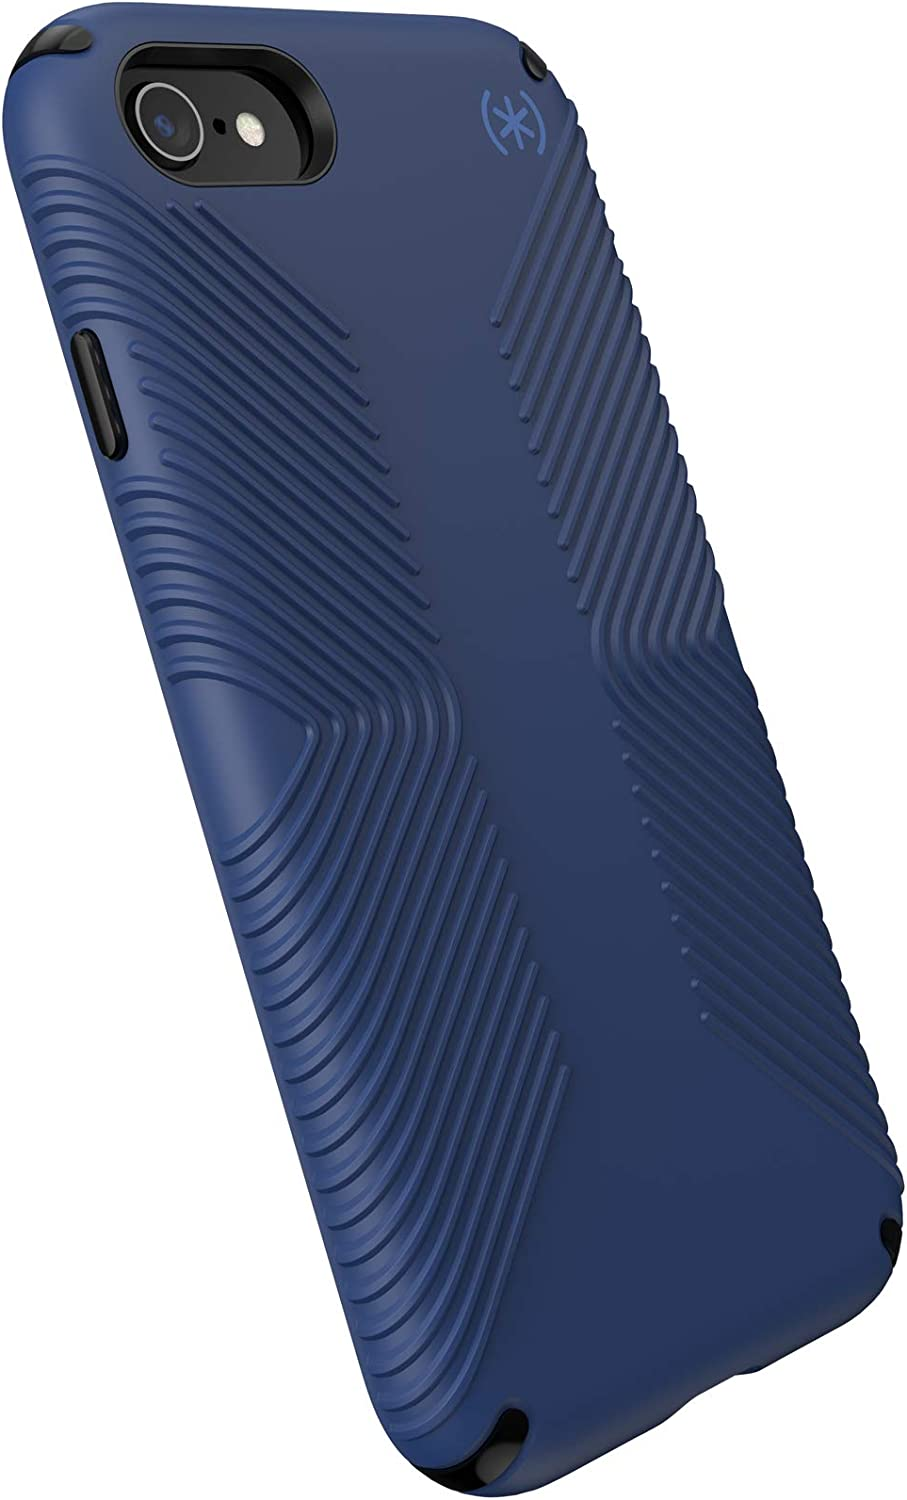 Speck Products Presidio2 Grip Case, Compatible with iPhone SE (2020)/iPhone 8/iPhone 7, Coastal Blue/Black/Storm Grey